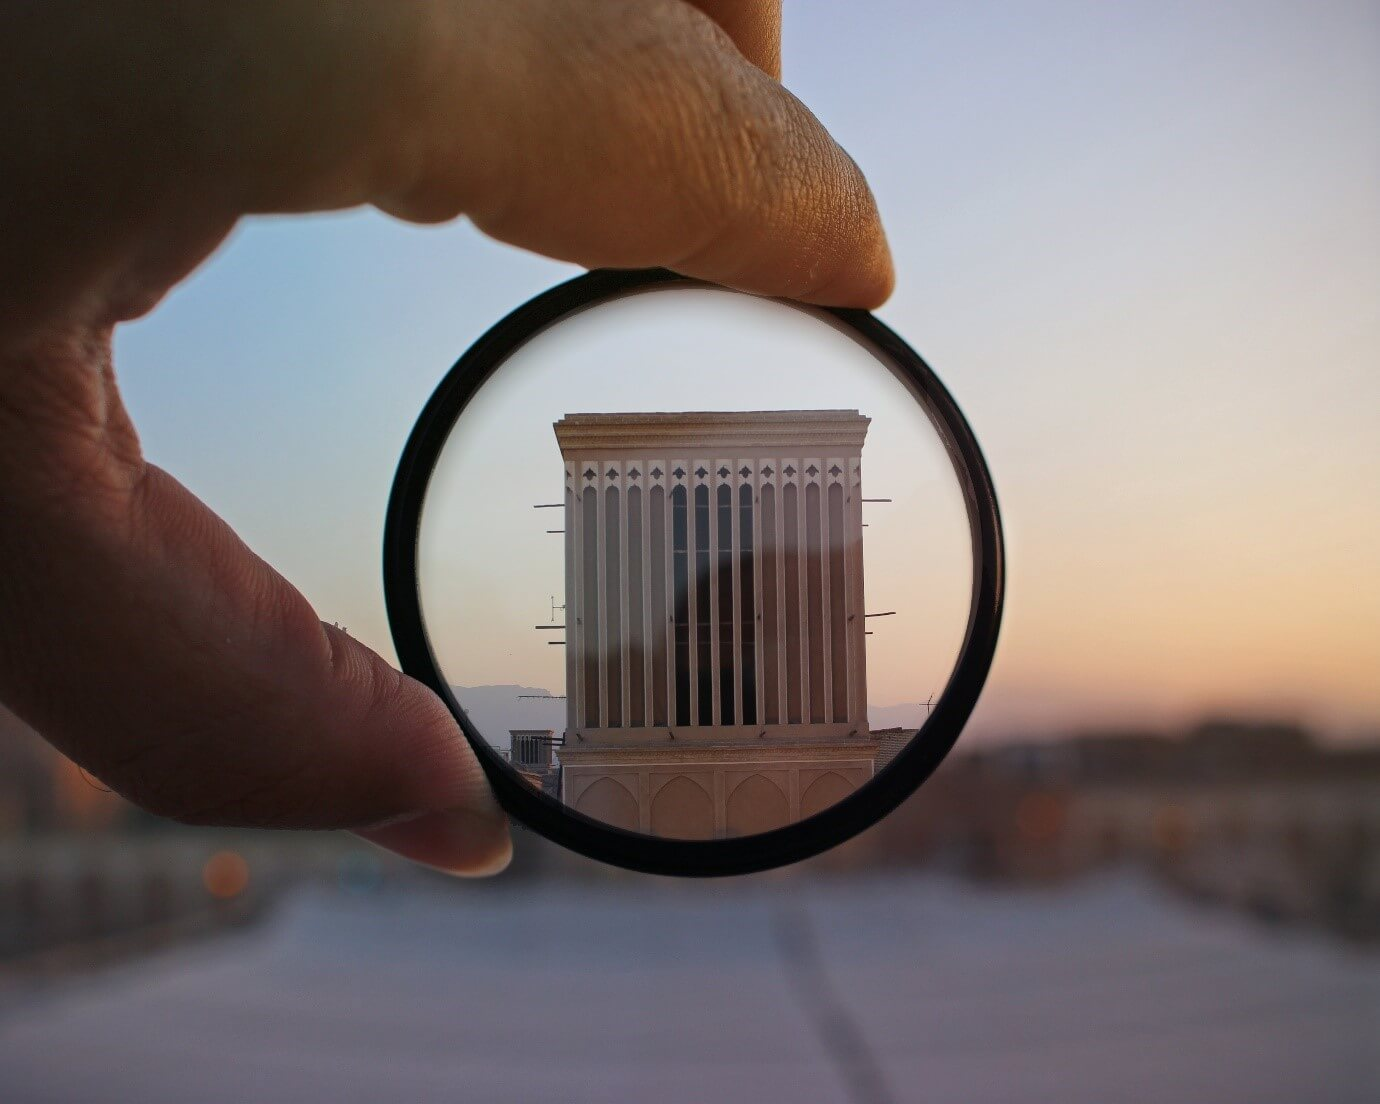 tips for photography - creativity & perspective